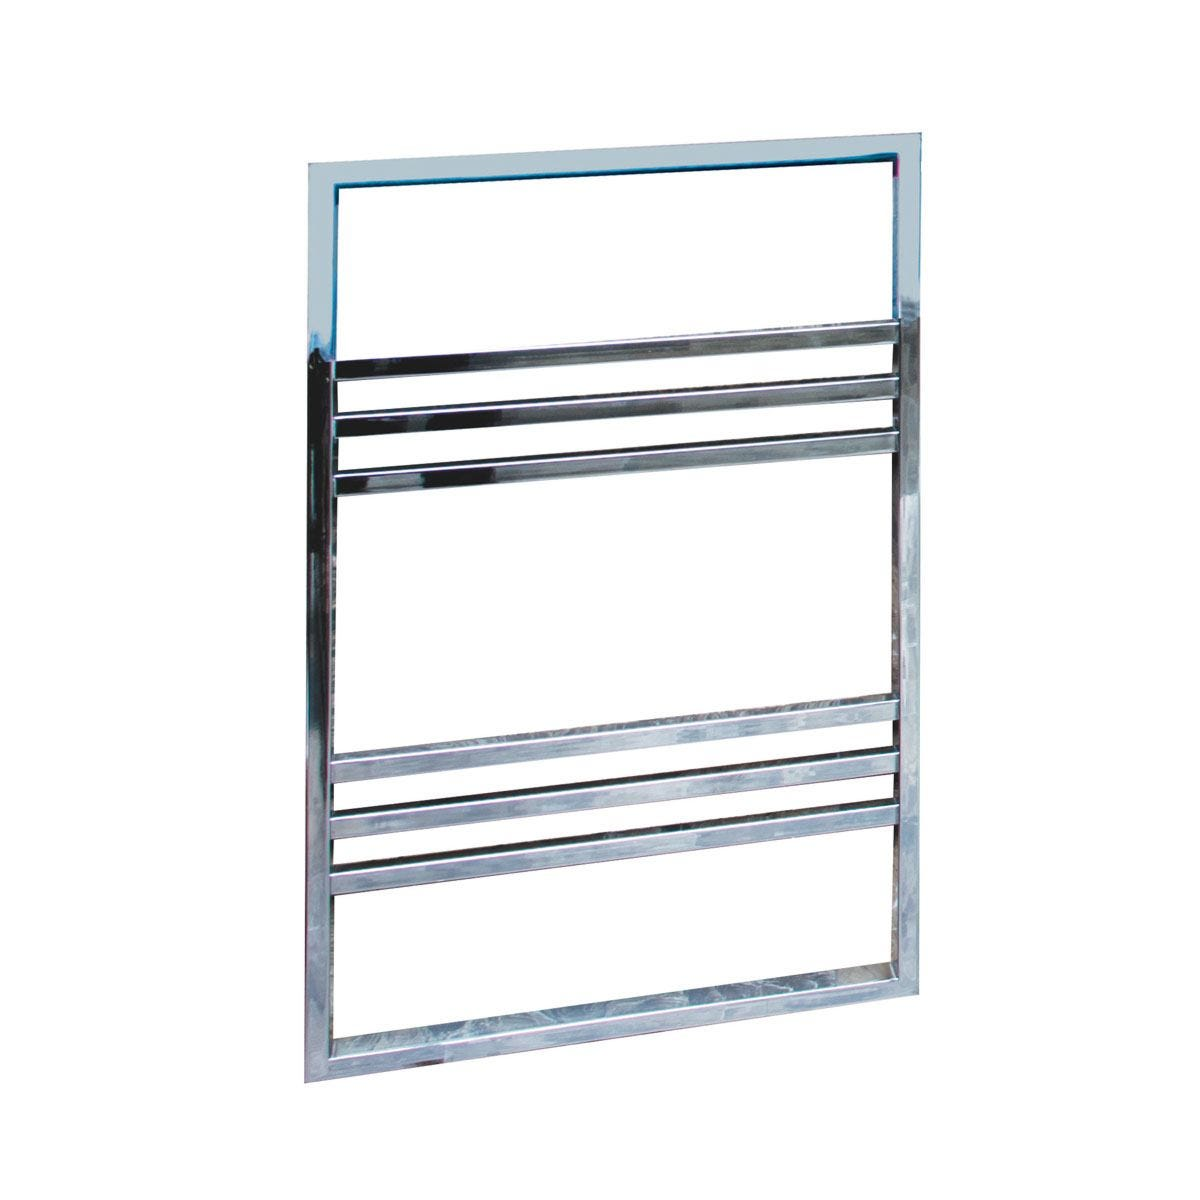 Heating Style Boxford Towel Warmer 800mm x 500mm - Chrome